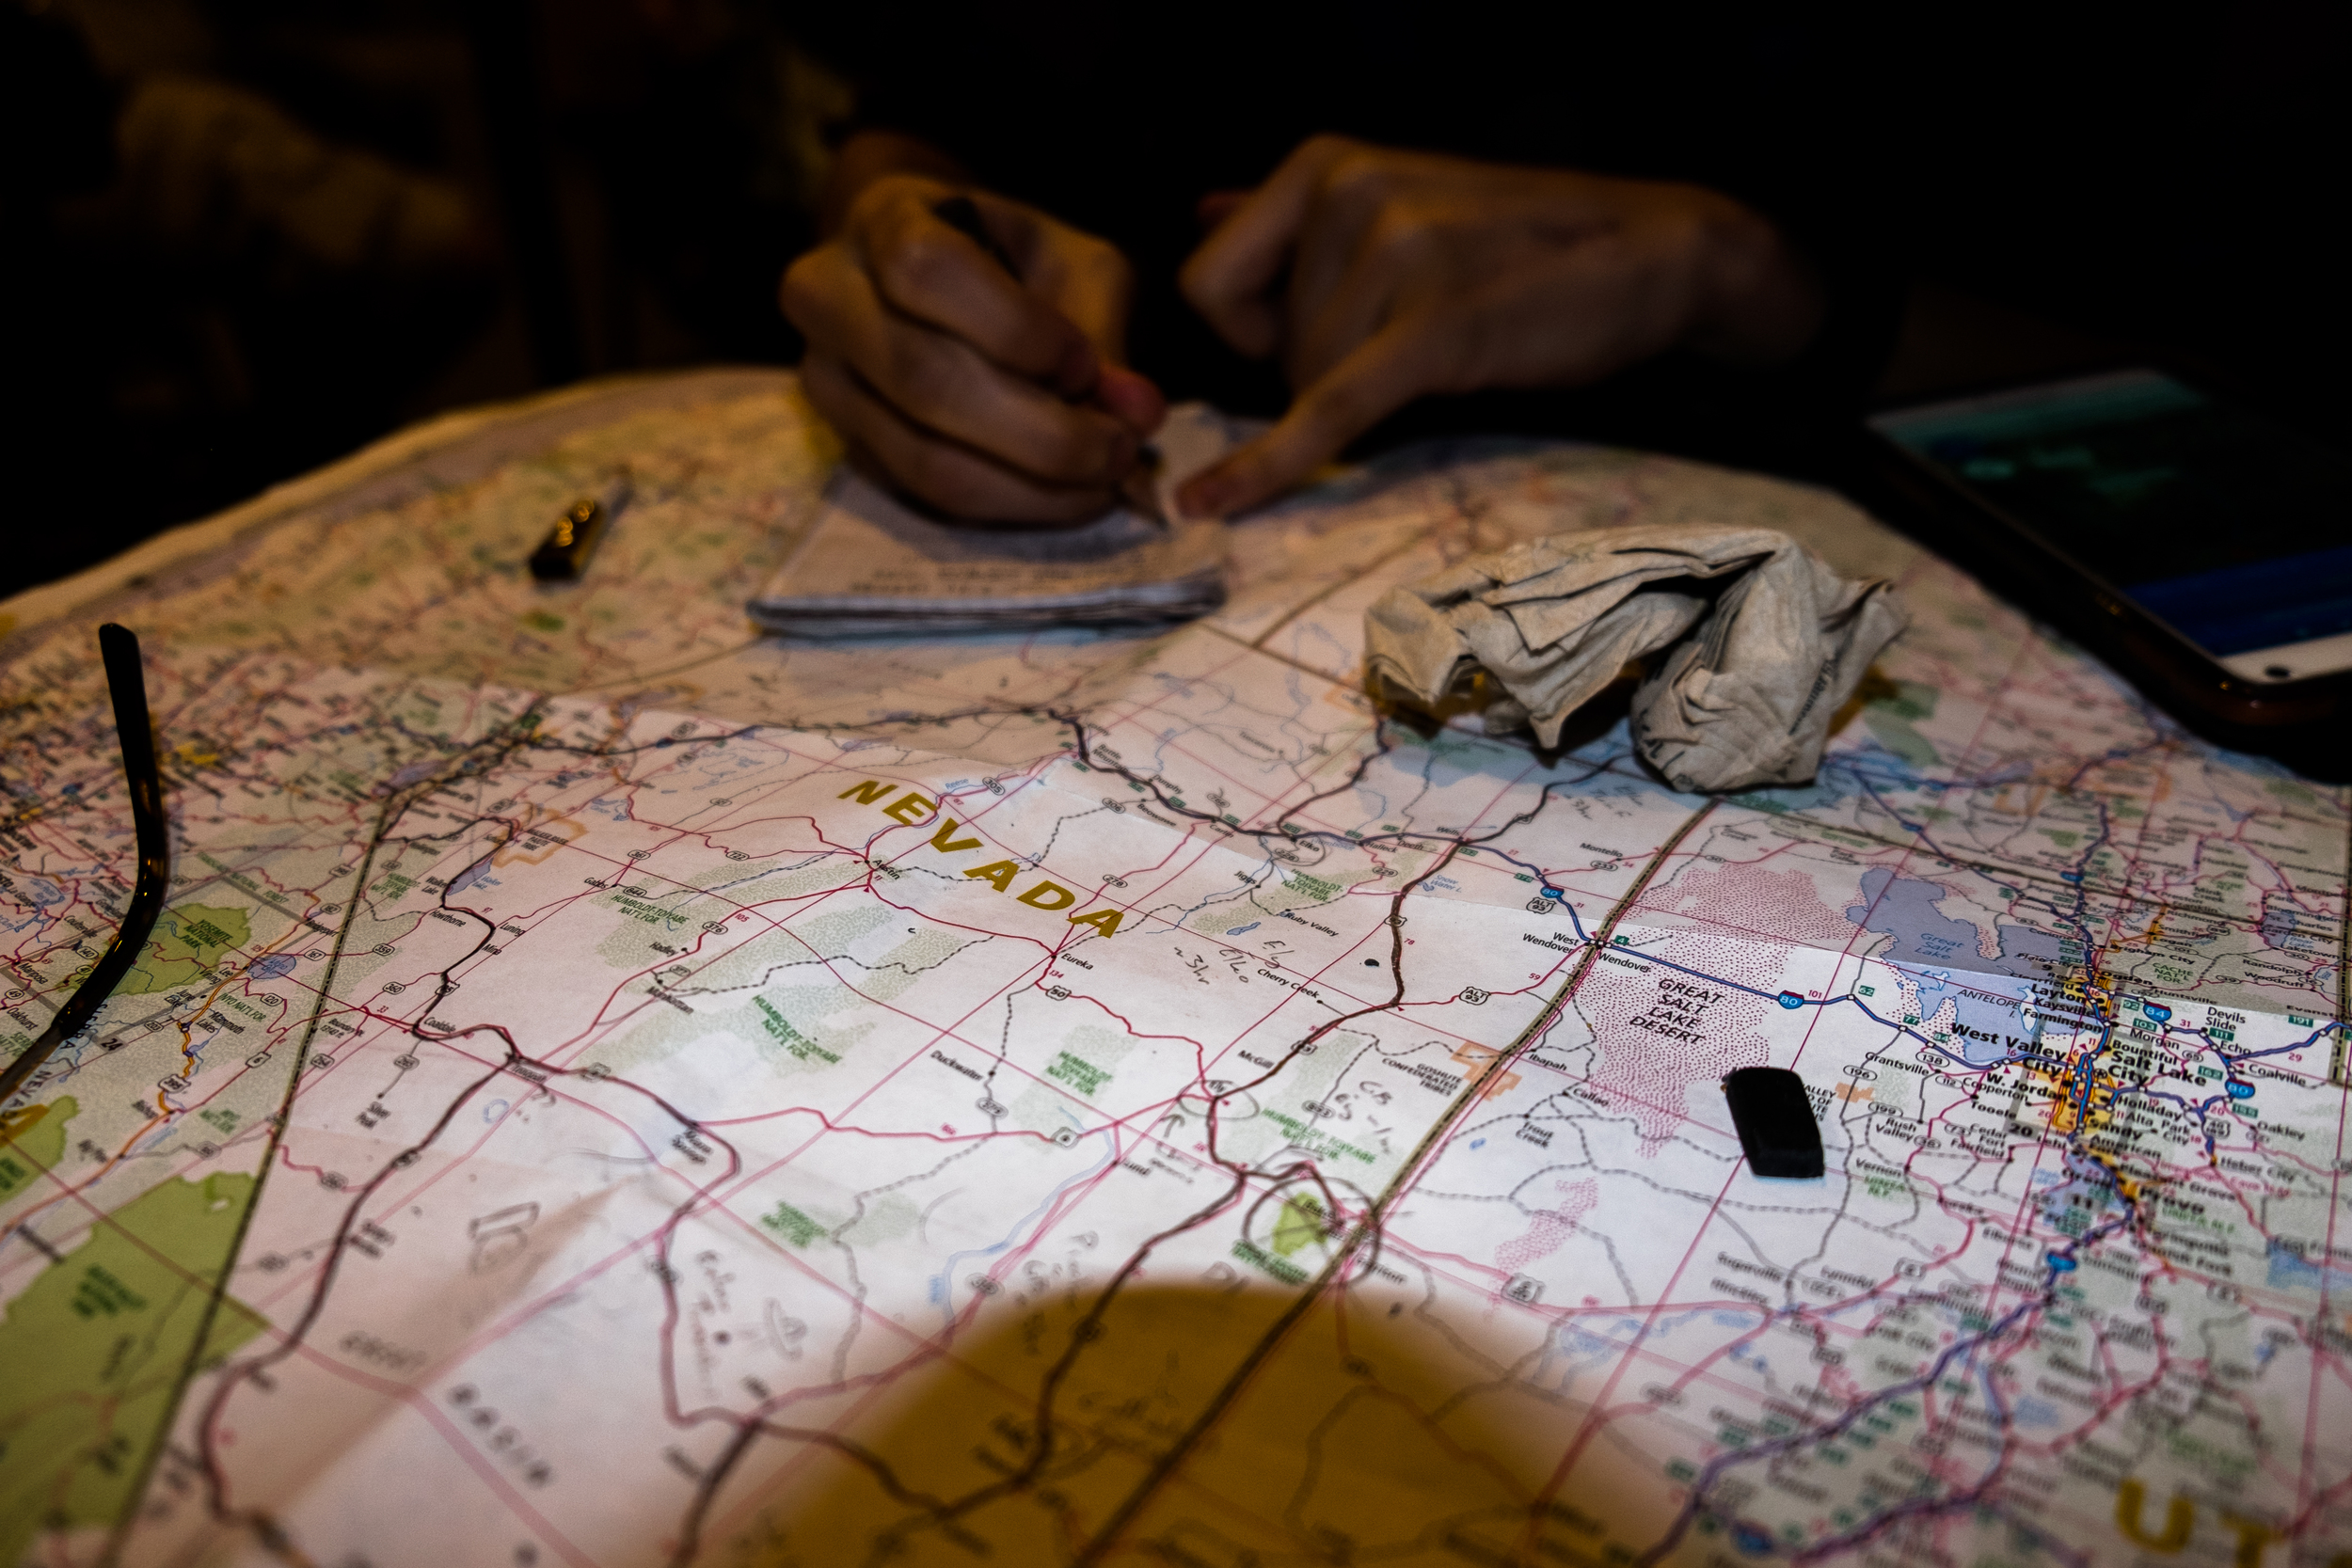 Planning the trip on a road map of the Western states.